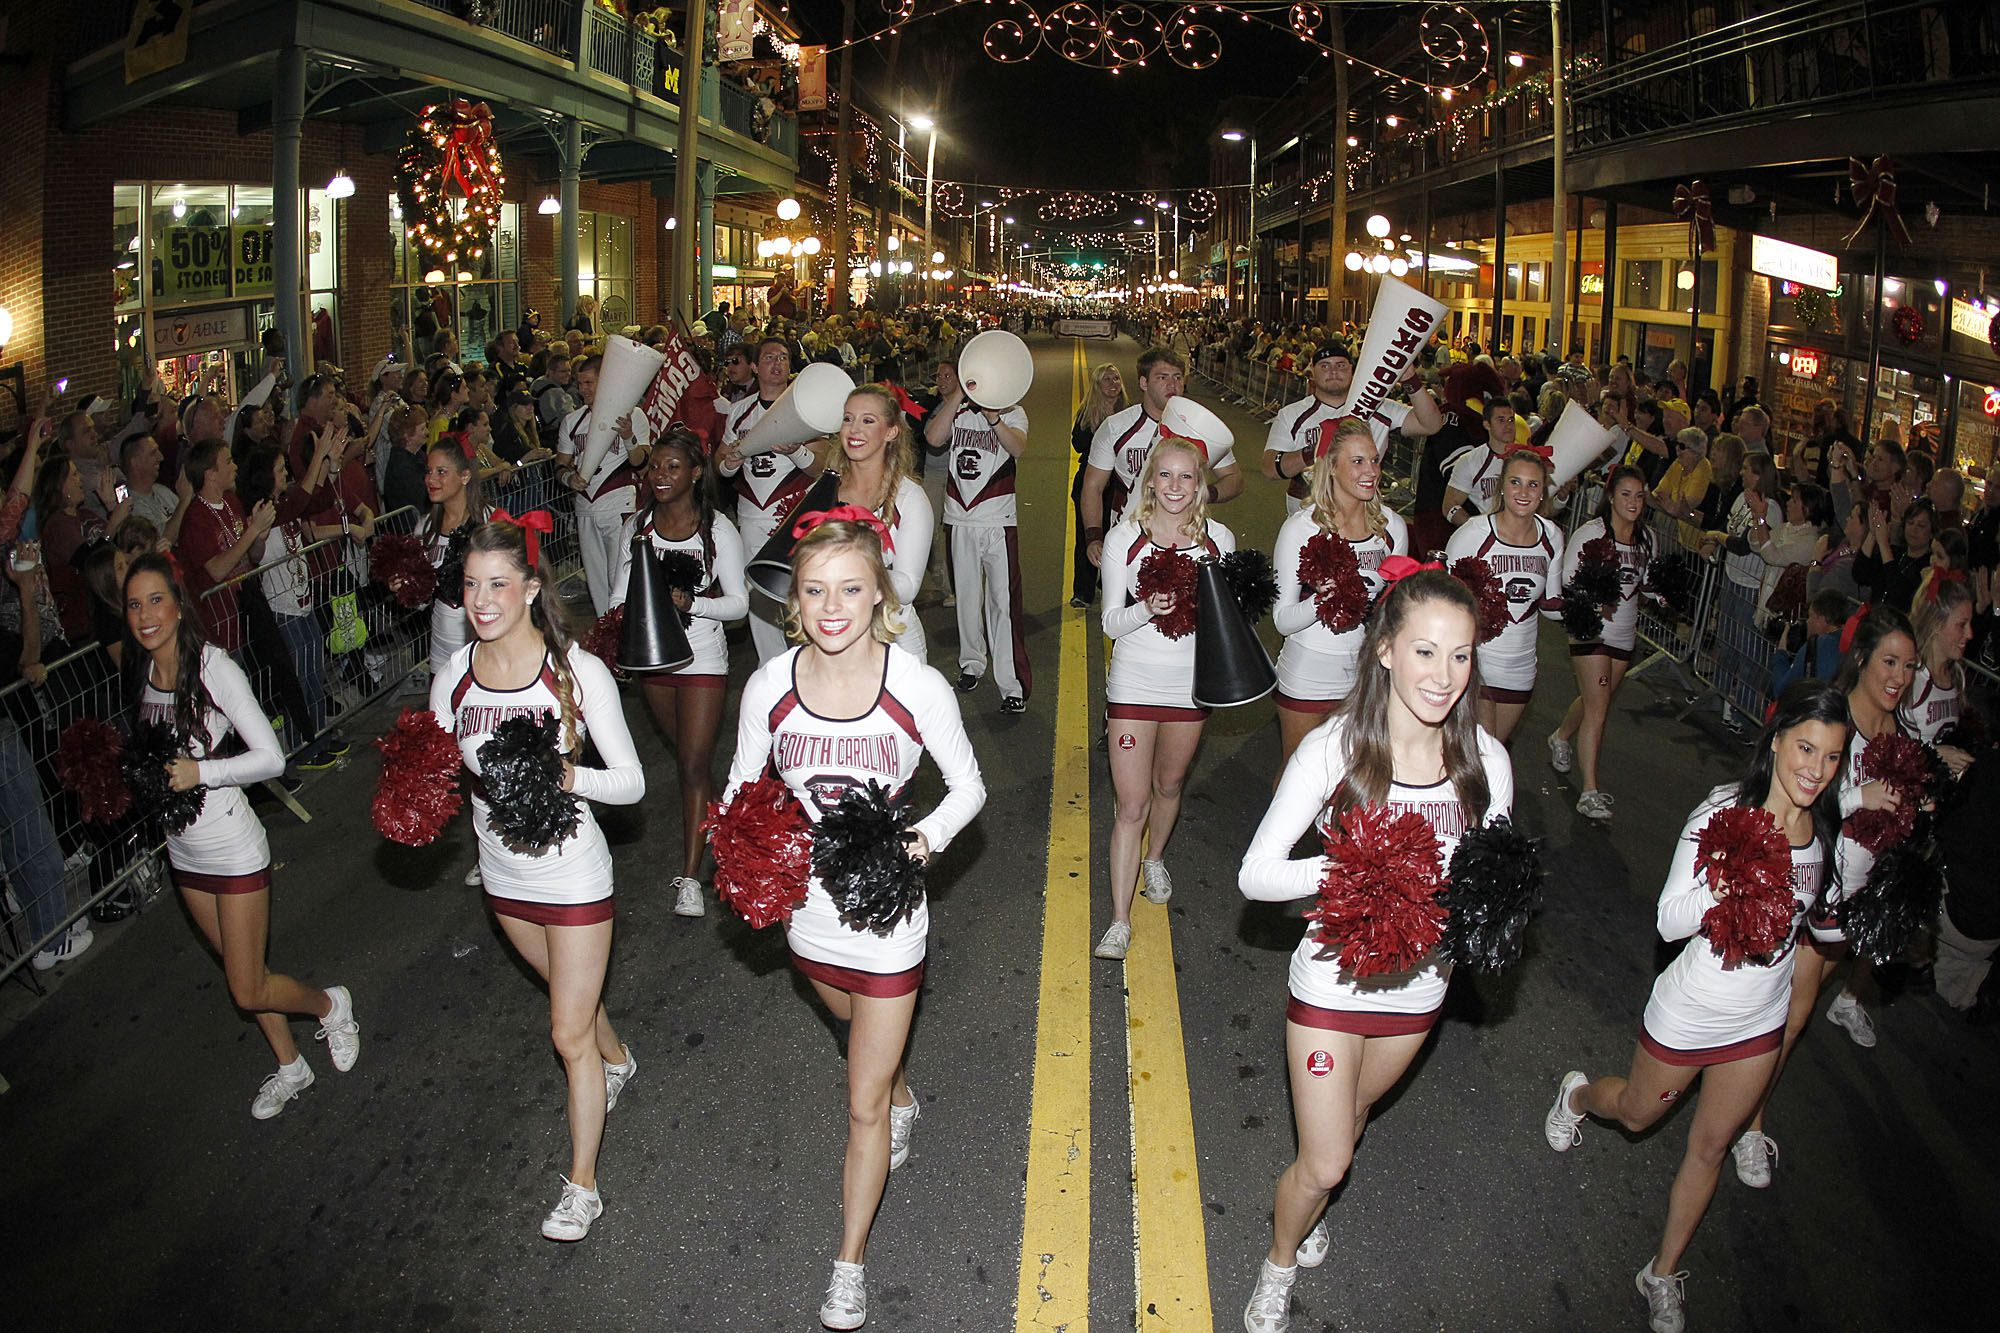 Gamecock cheerleaders and marching band at the Outback